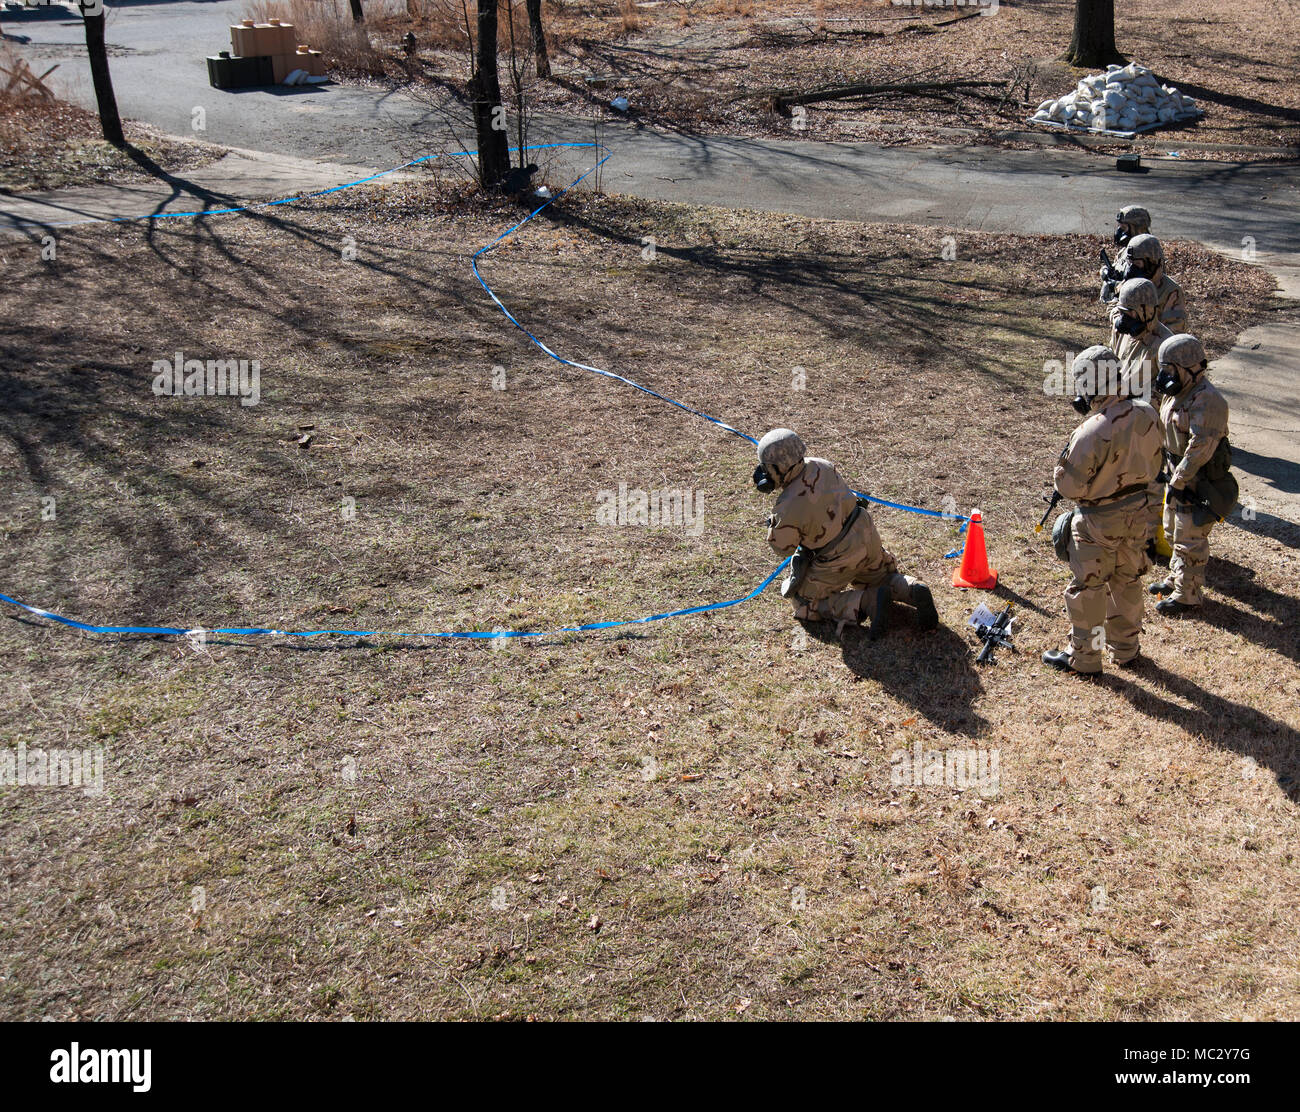 11th Wing Airmen cordon an unexploded ordnance during the Ability to Survive and Operate exercise on Joint Base Andrews, Md., Jan. 25, 2018. Cordoning UXOs sets a protective perimeter for other Airmen. (U.S. Air Force photo by Airman Michael S. Murphy) - Stock Image